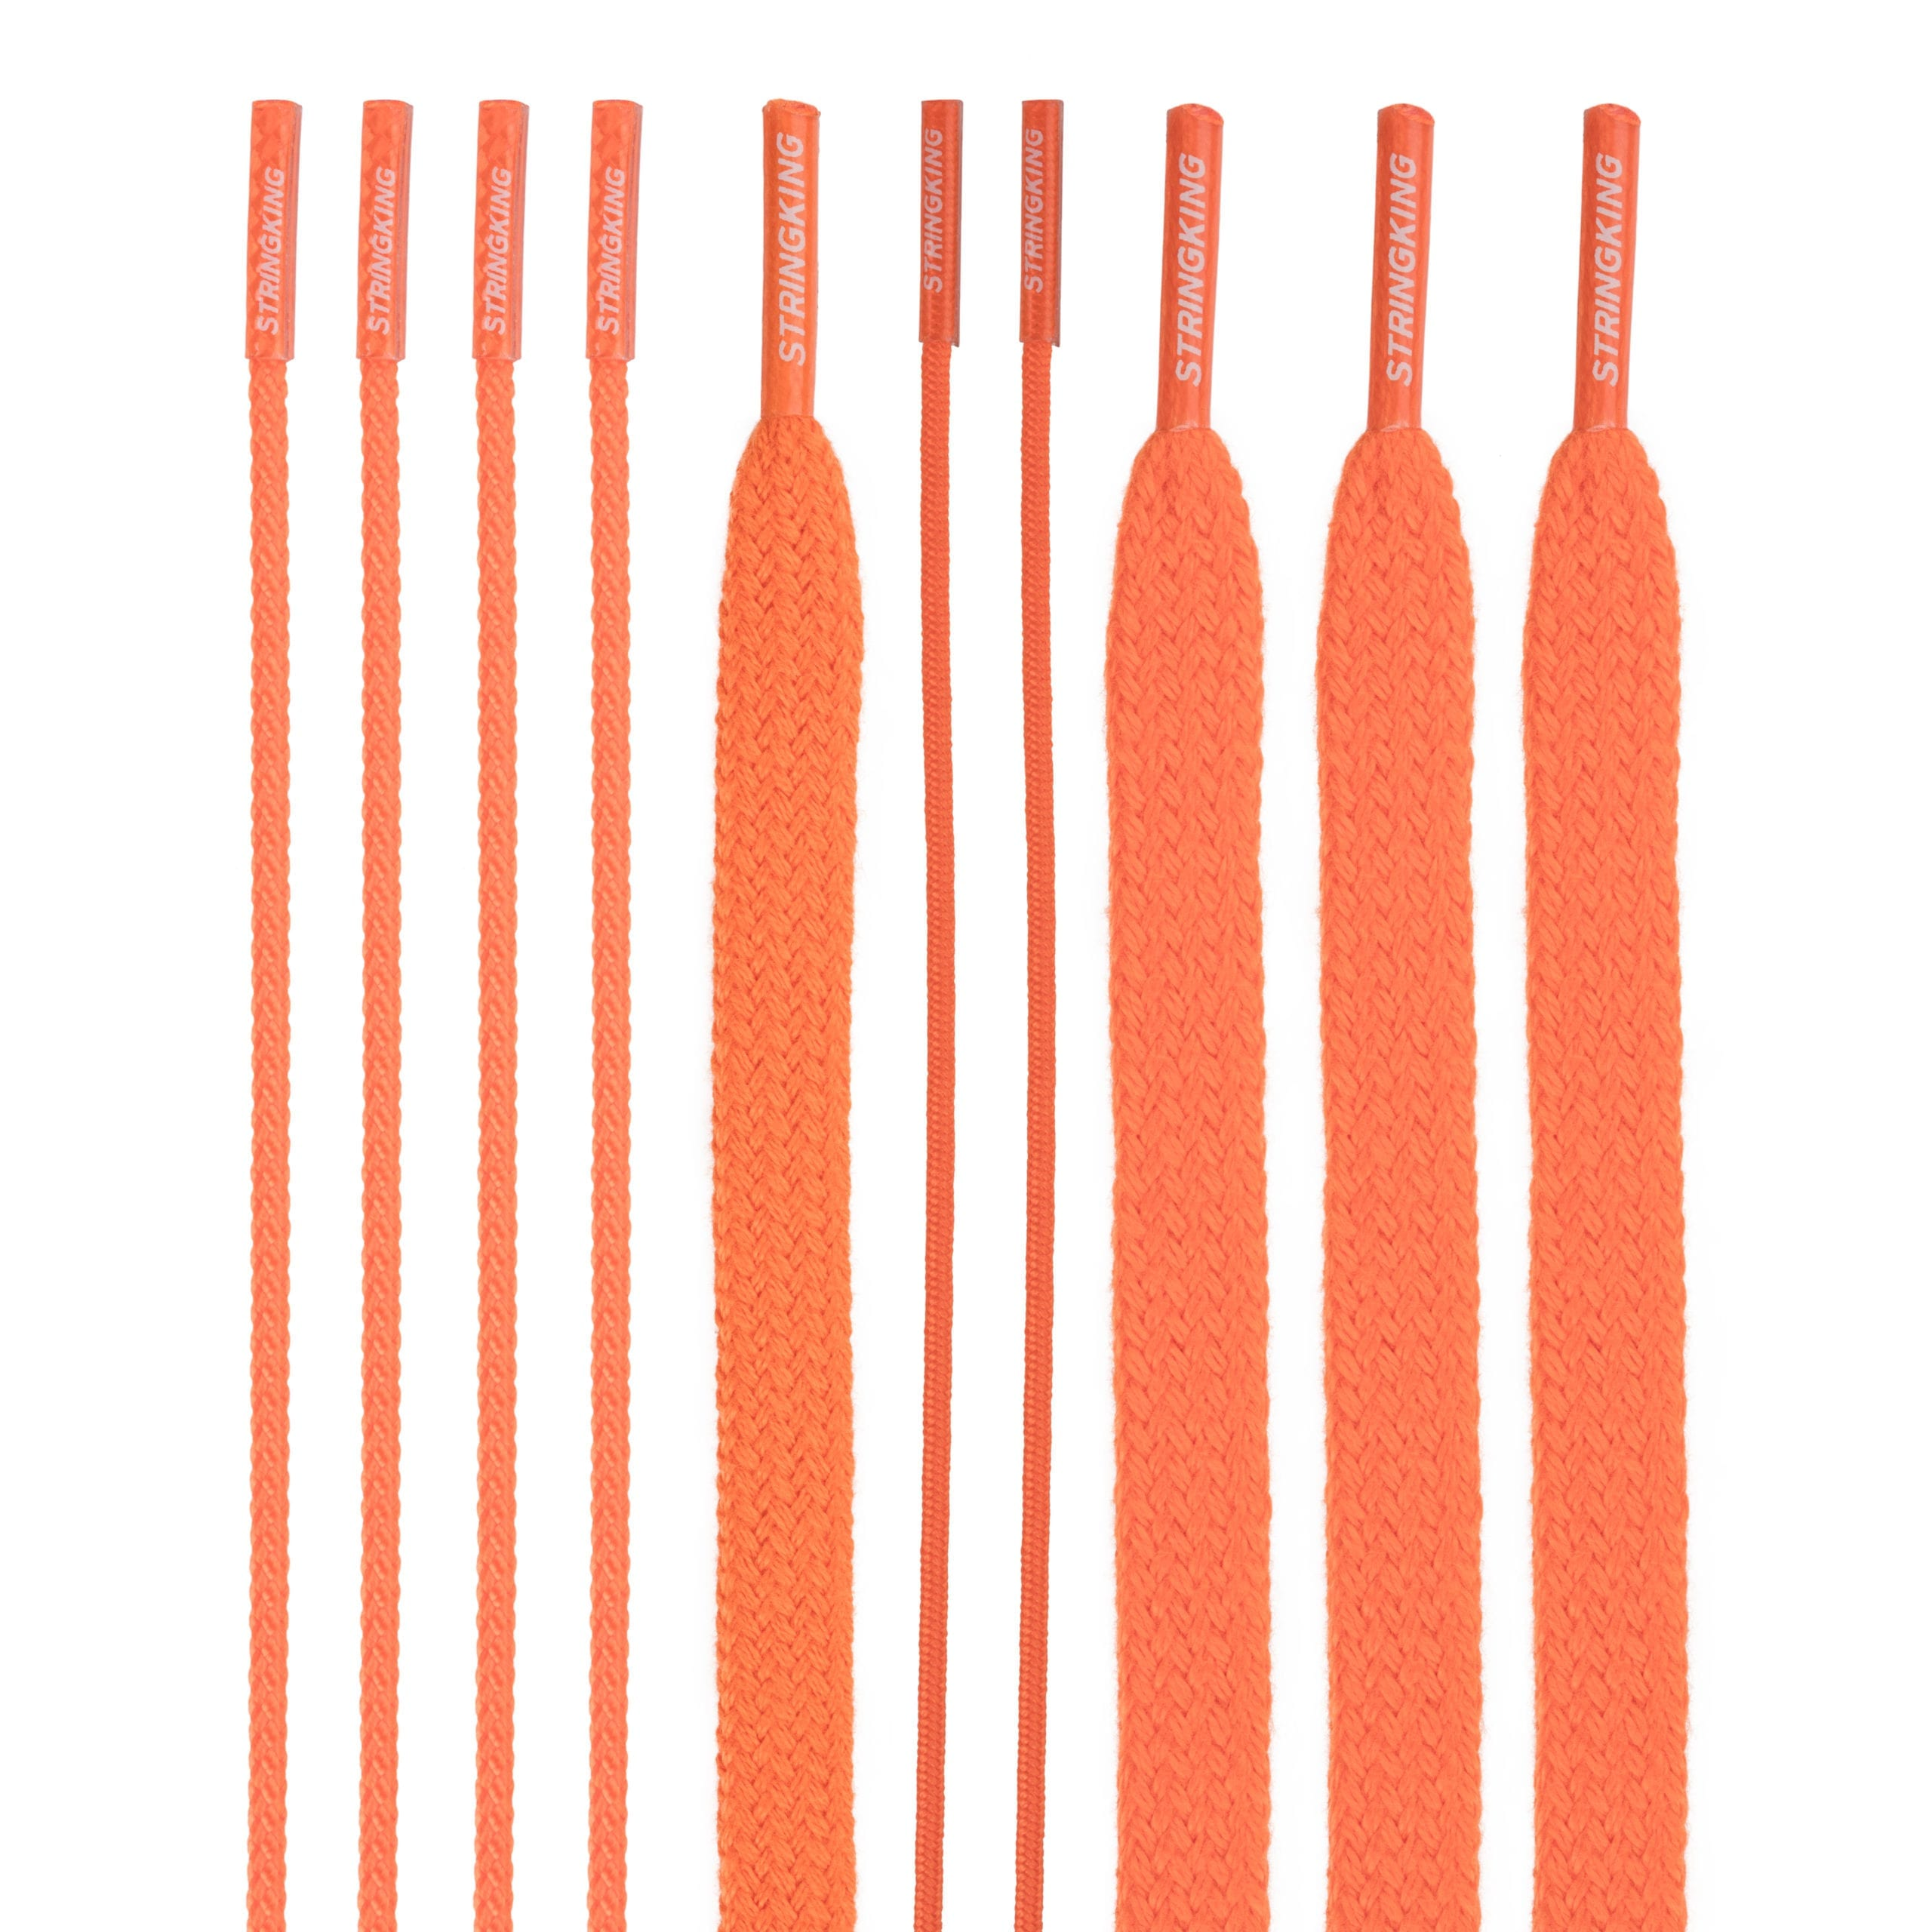 string-kit-BB-retailers-orange-1-scaled-1.jpg